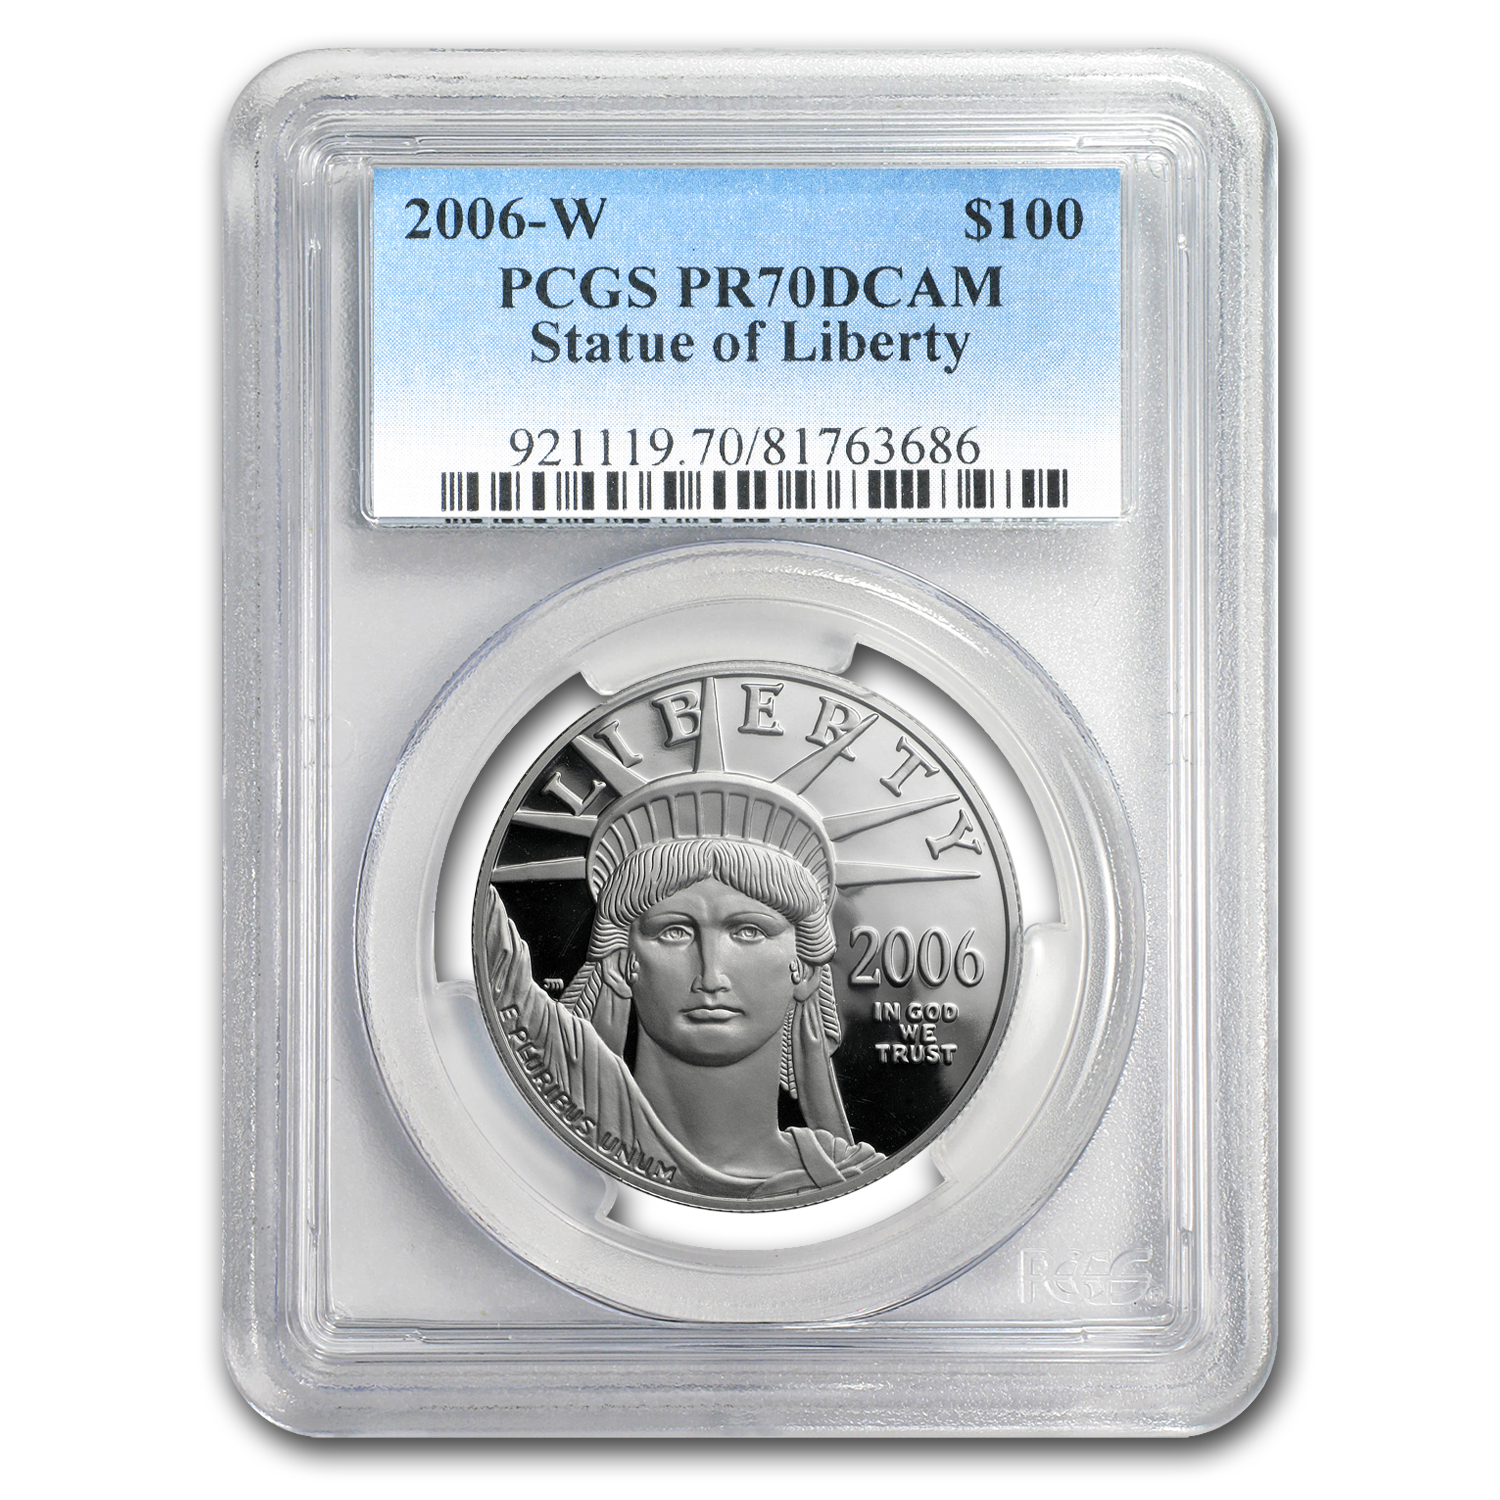 2006-W 1 oz Proof Platinum American Eagle PR-70 PCGS